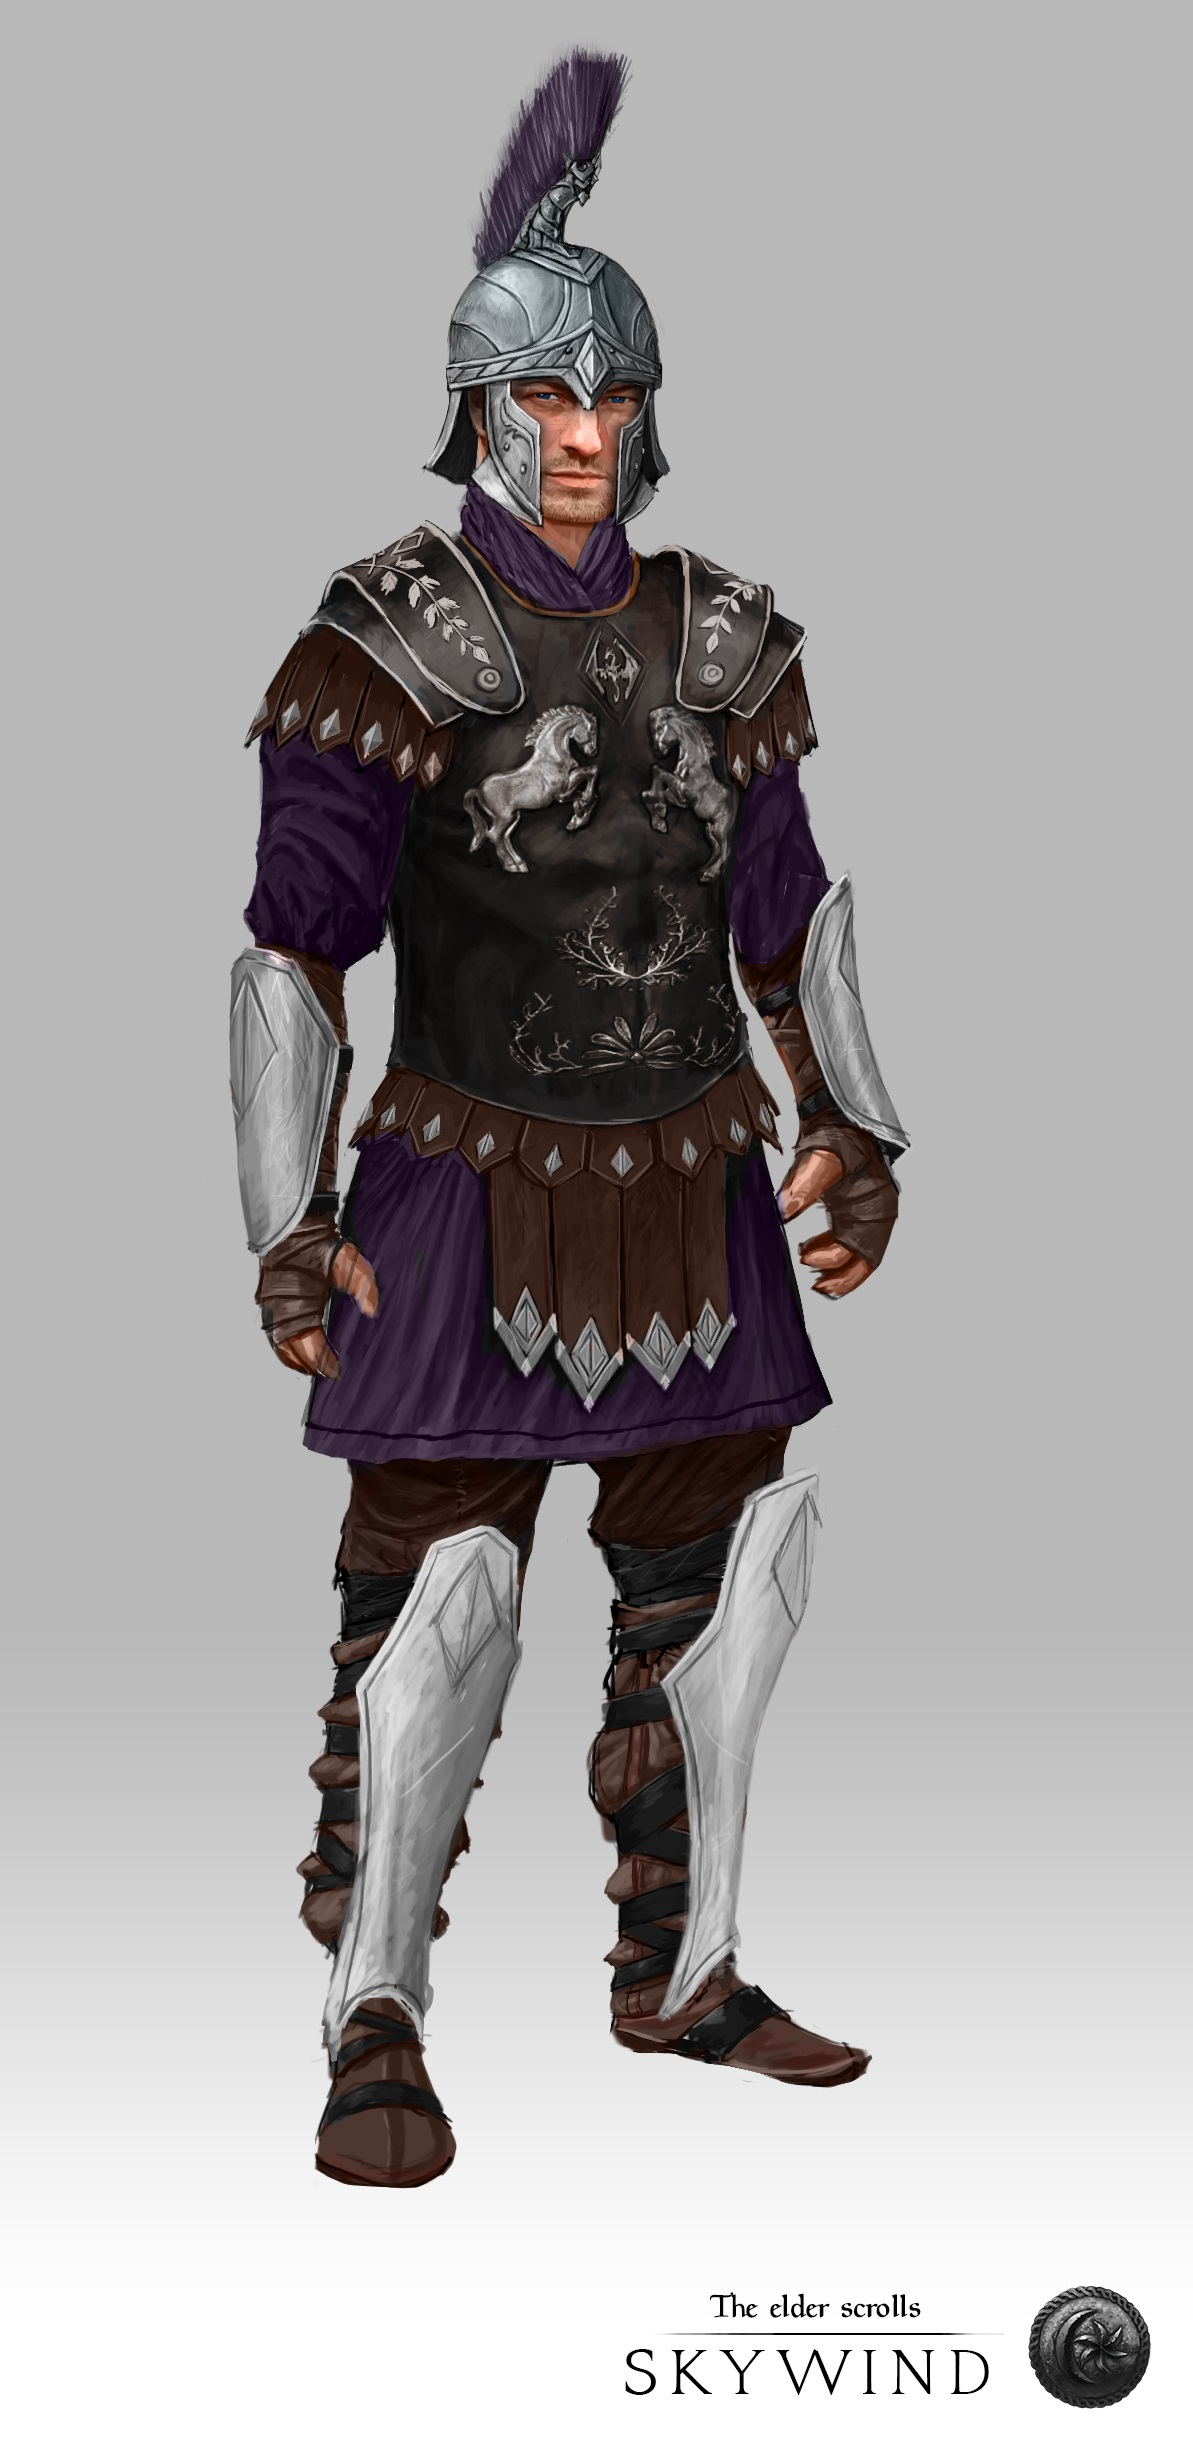 Drawn armor jerkin Skywind ARMOR this: close Imperial